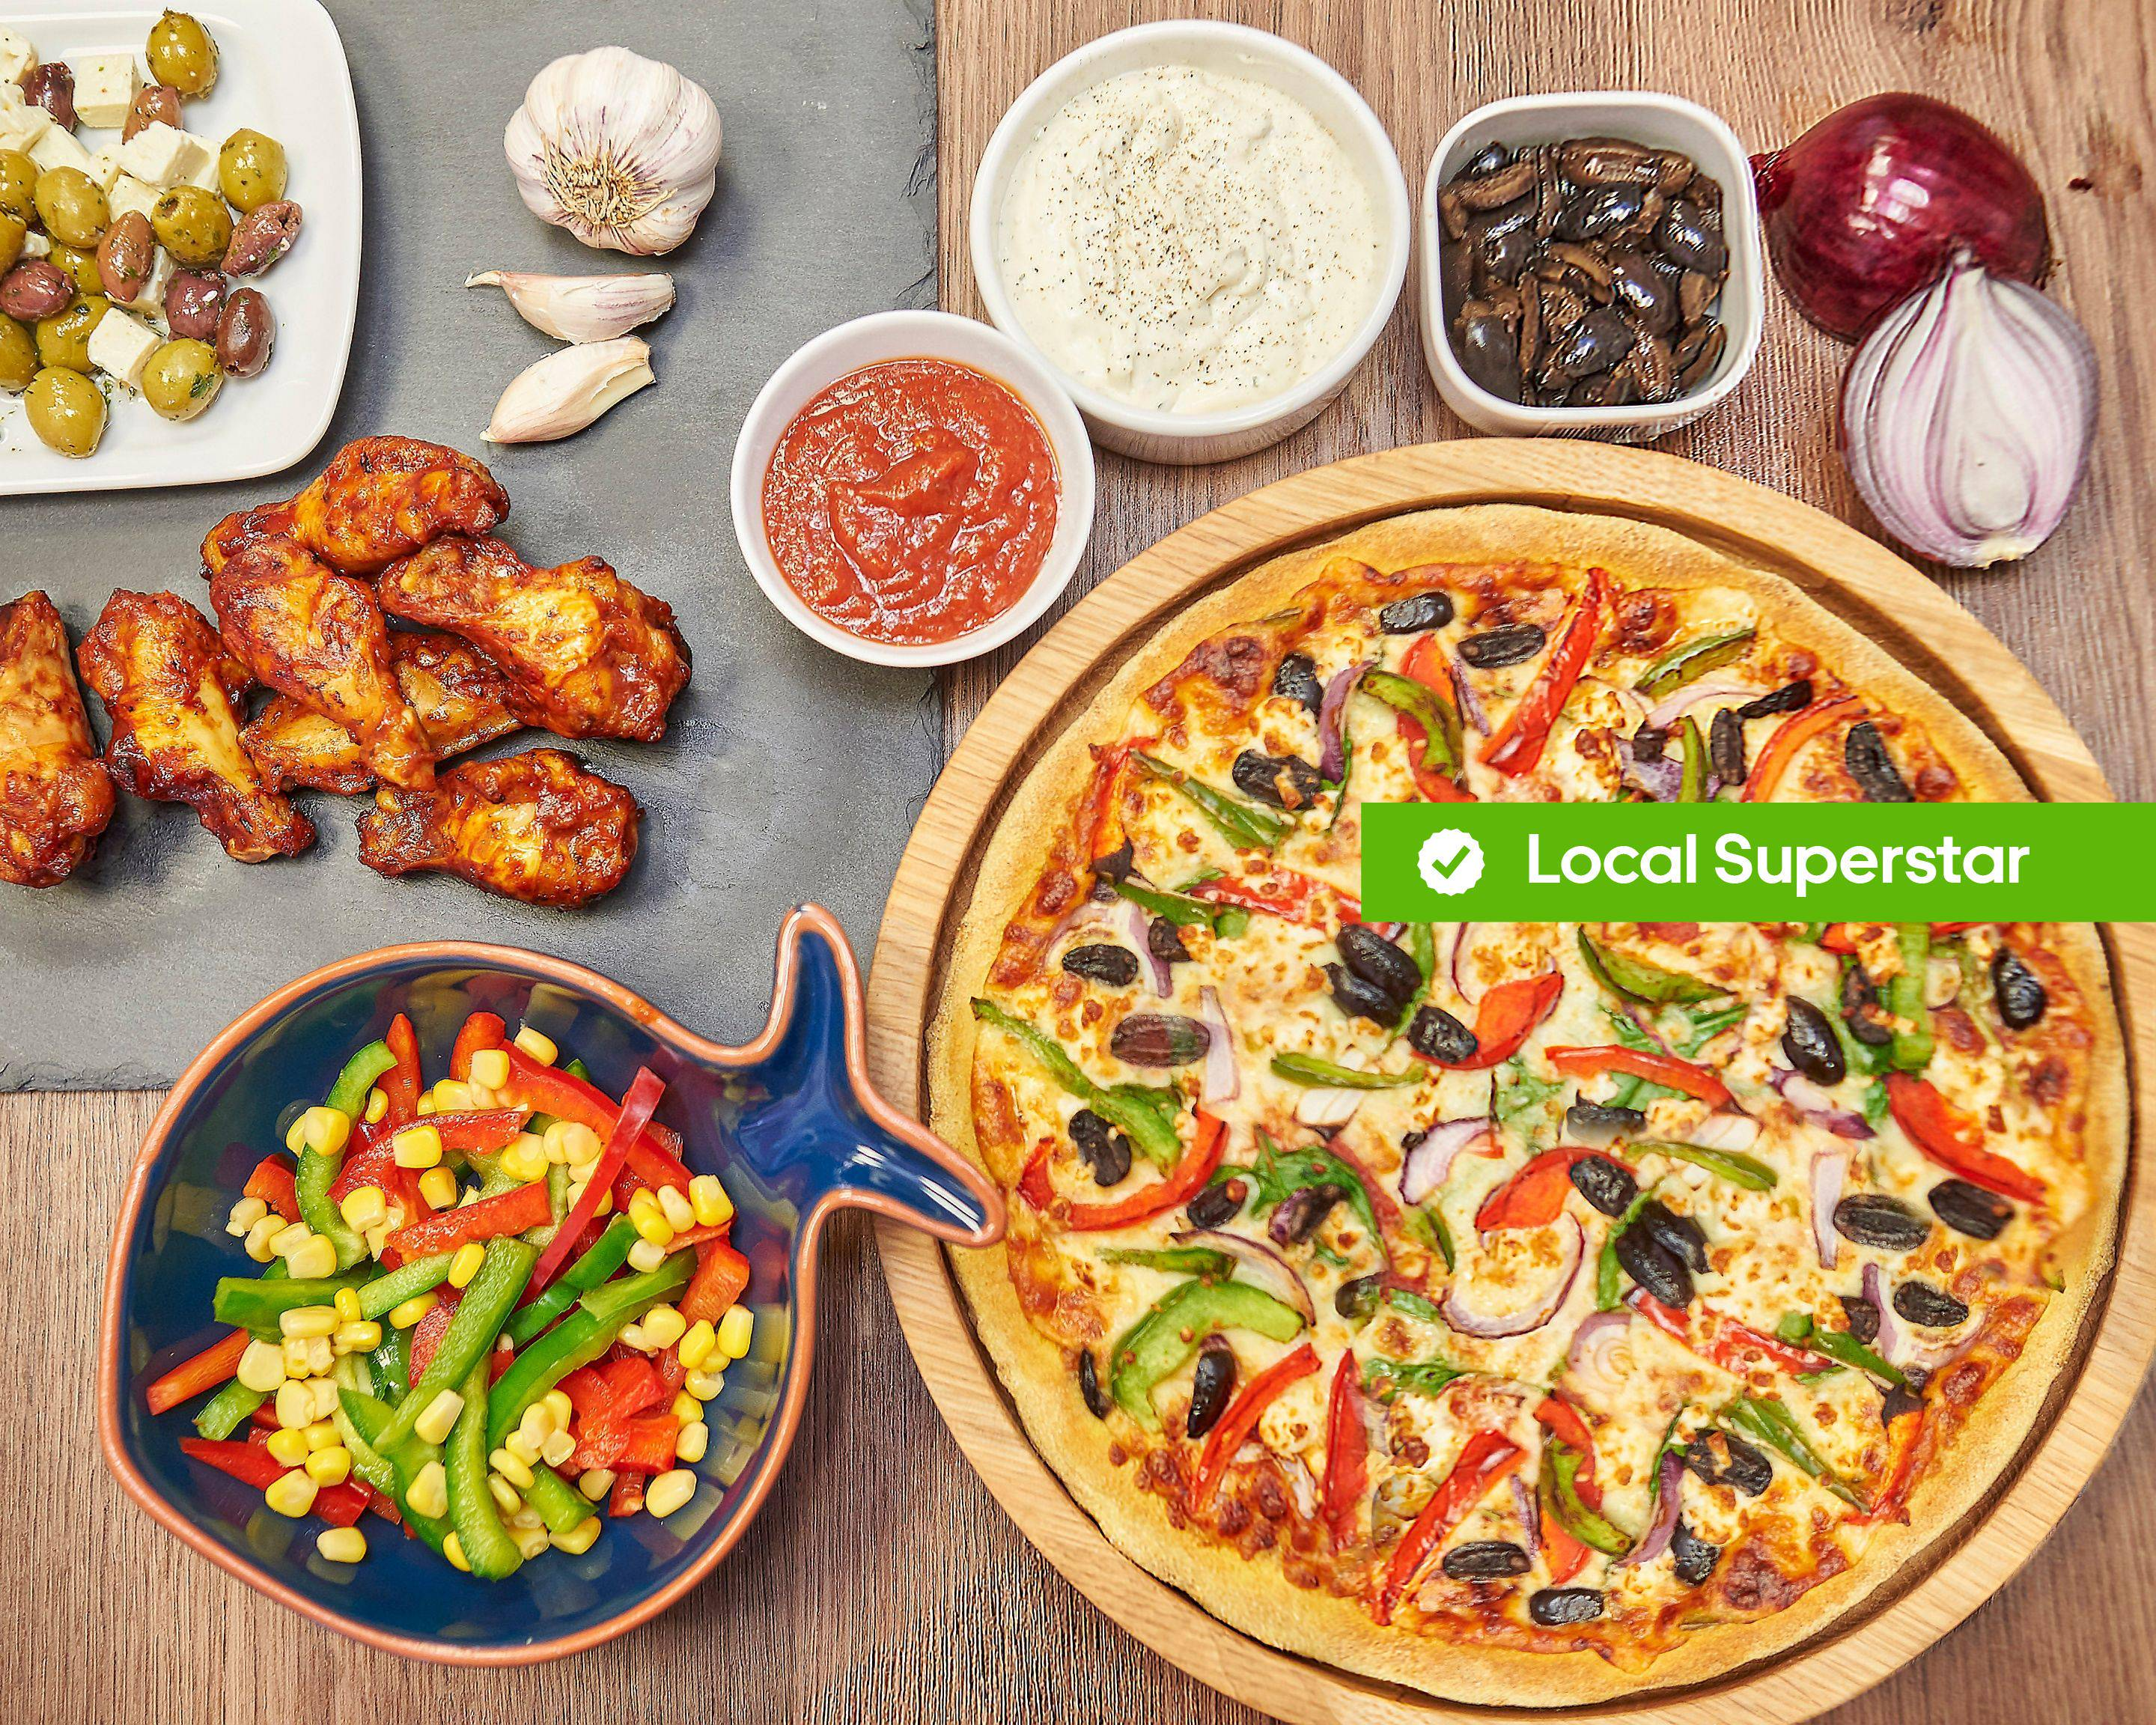 The Red Pizza Company Delivery Bristol Uber Eats